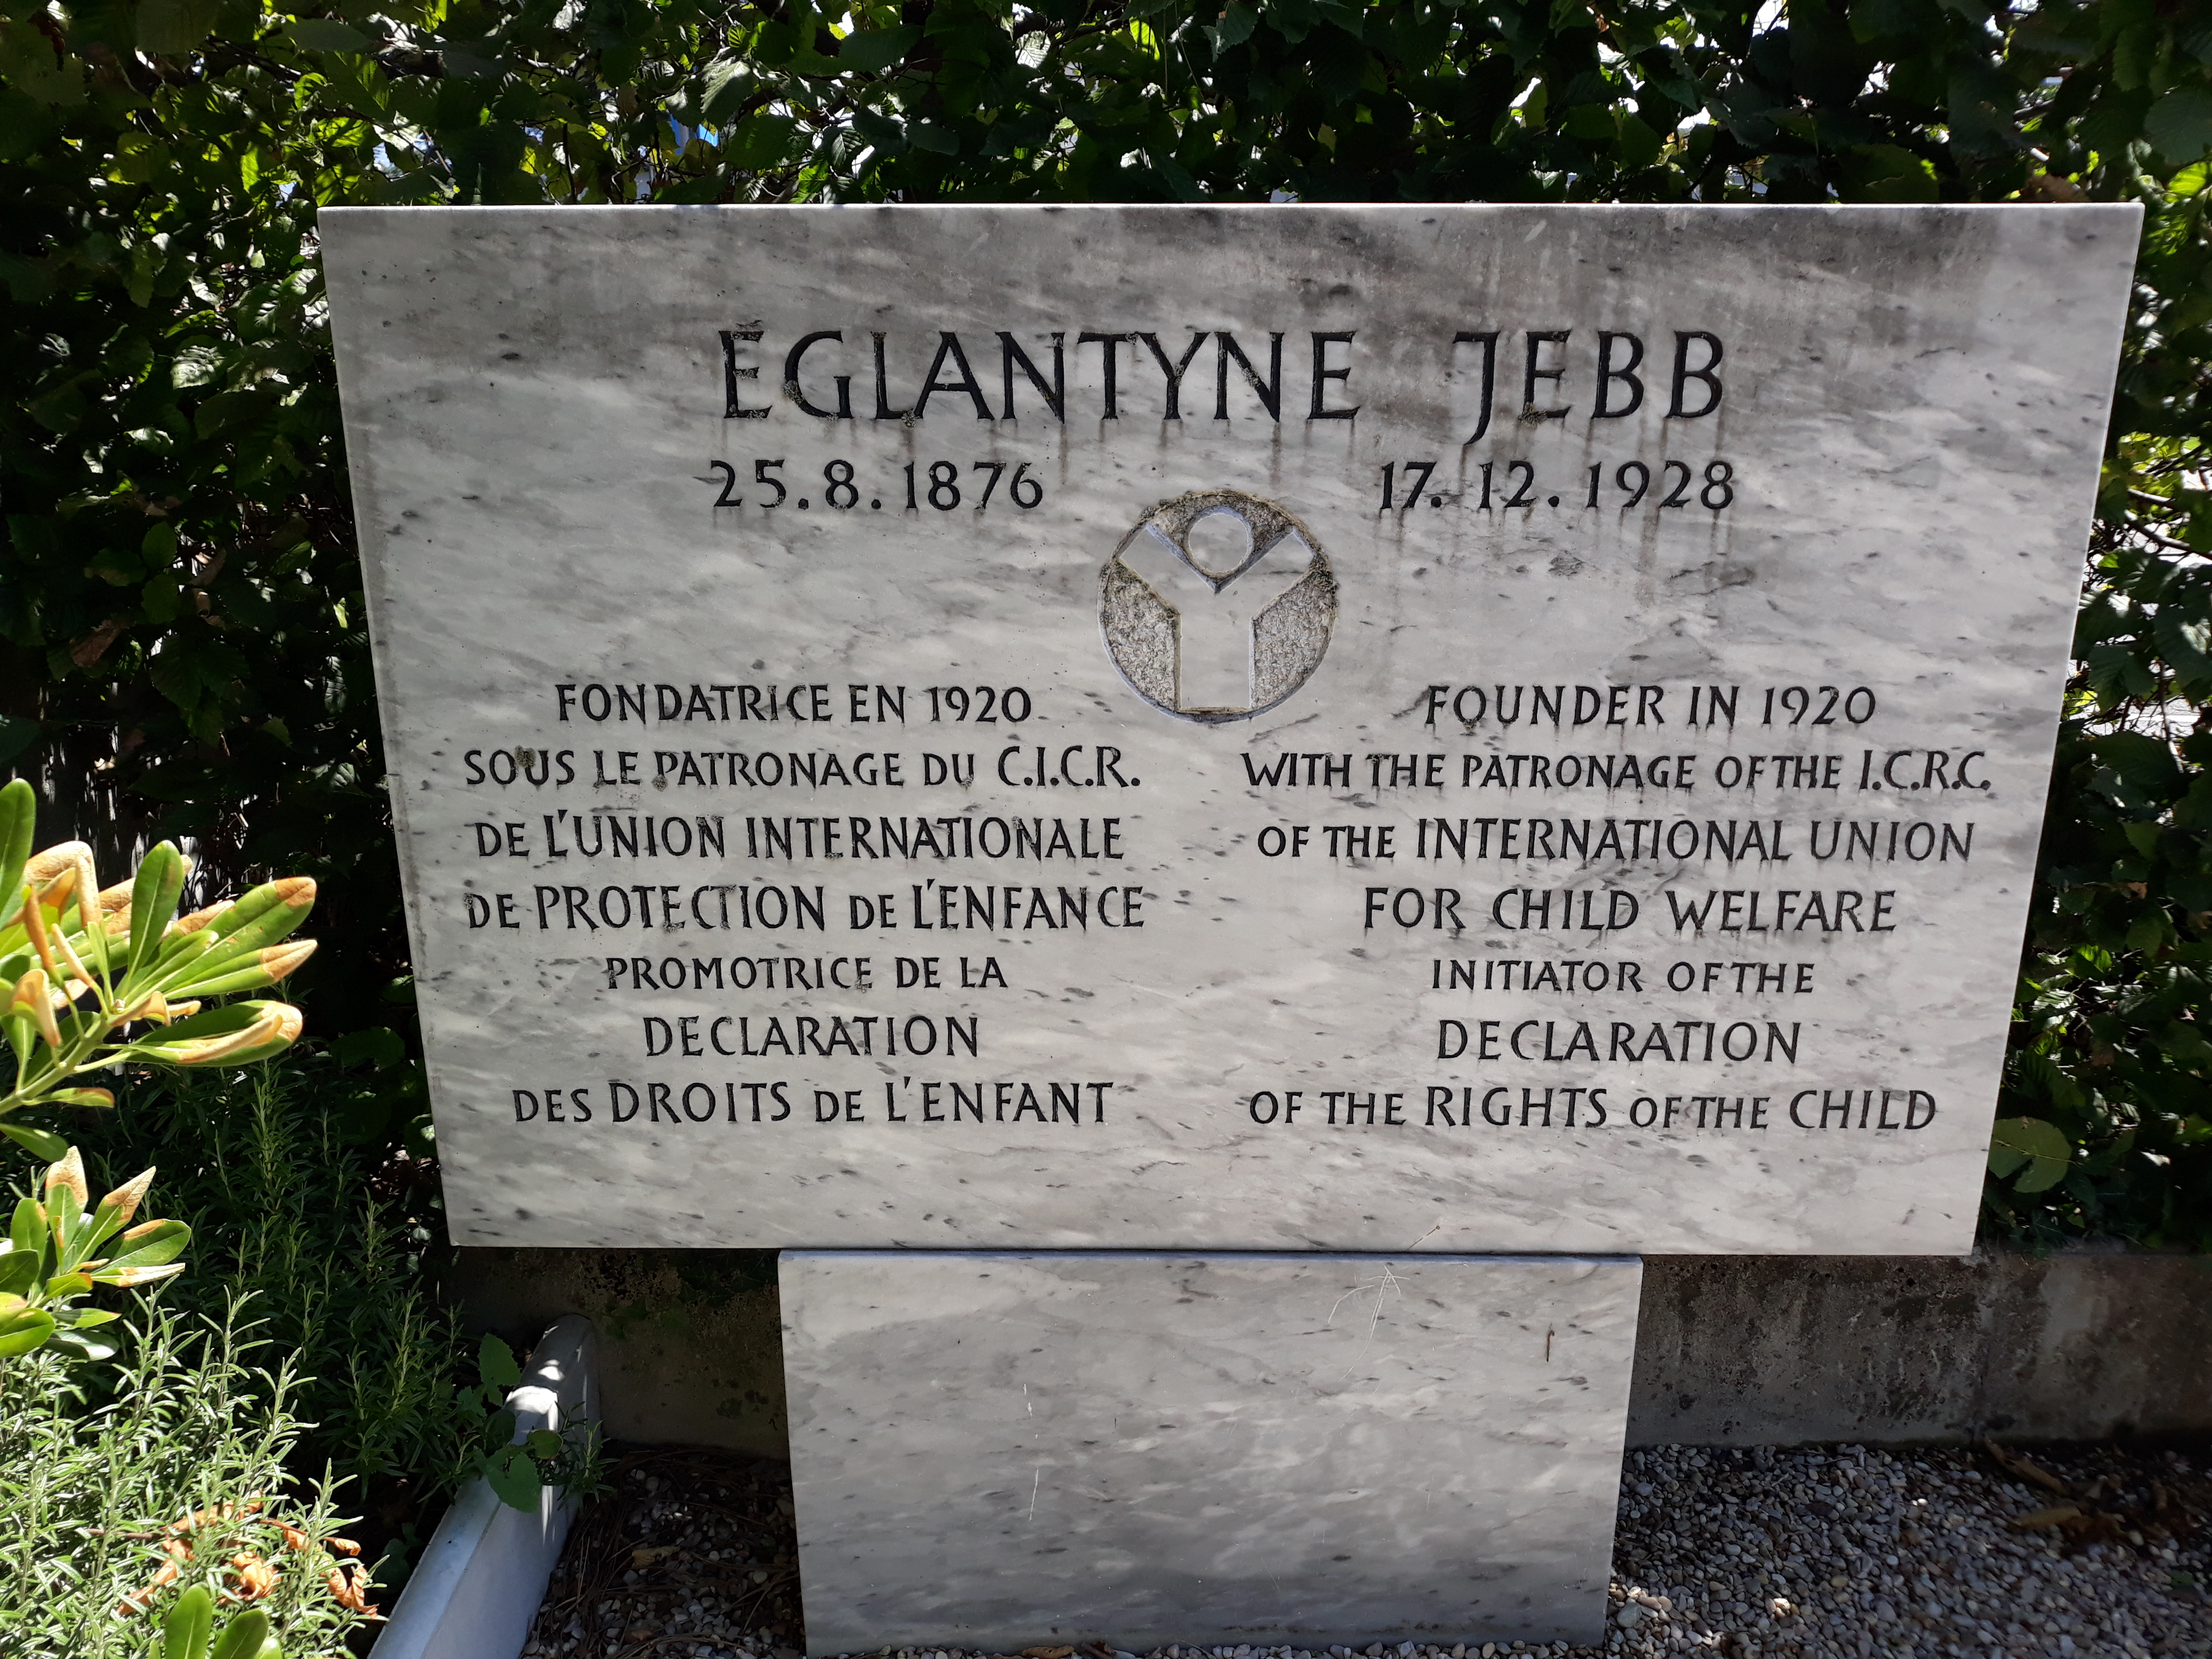 Memorial to Eglantyne Jebb on the [[ICRC